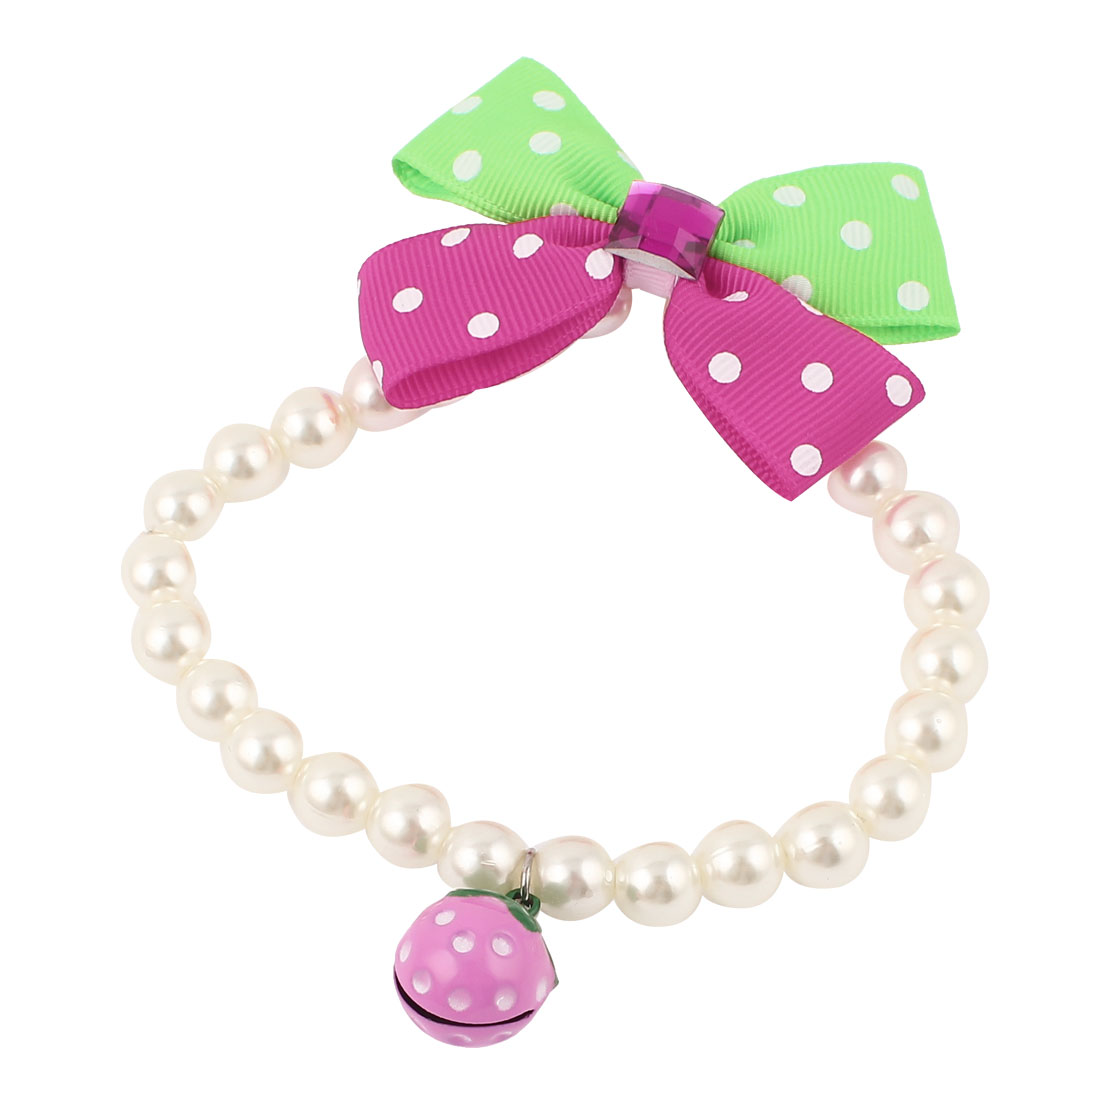 Metal Bell Pendant Bowknot Accent Pet Plastic Beads Pearls Collar Necklace White Green Fuchsia S